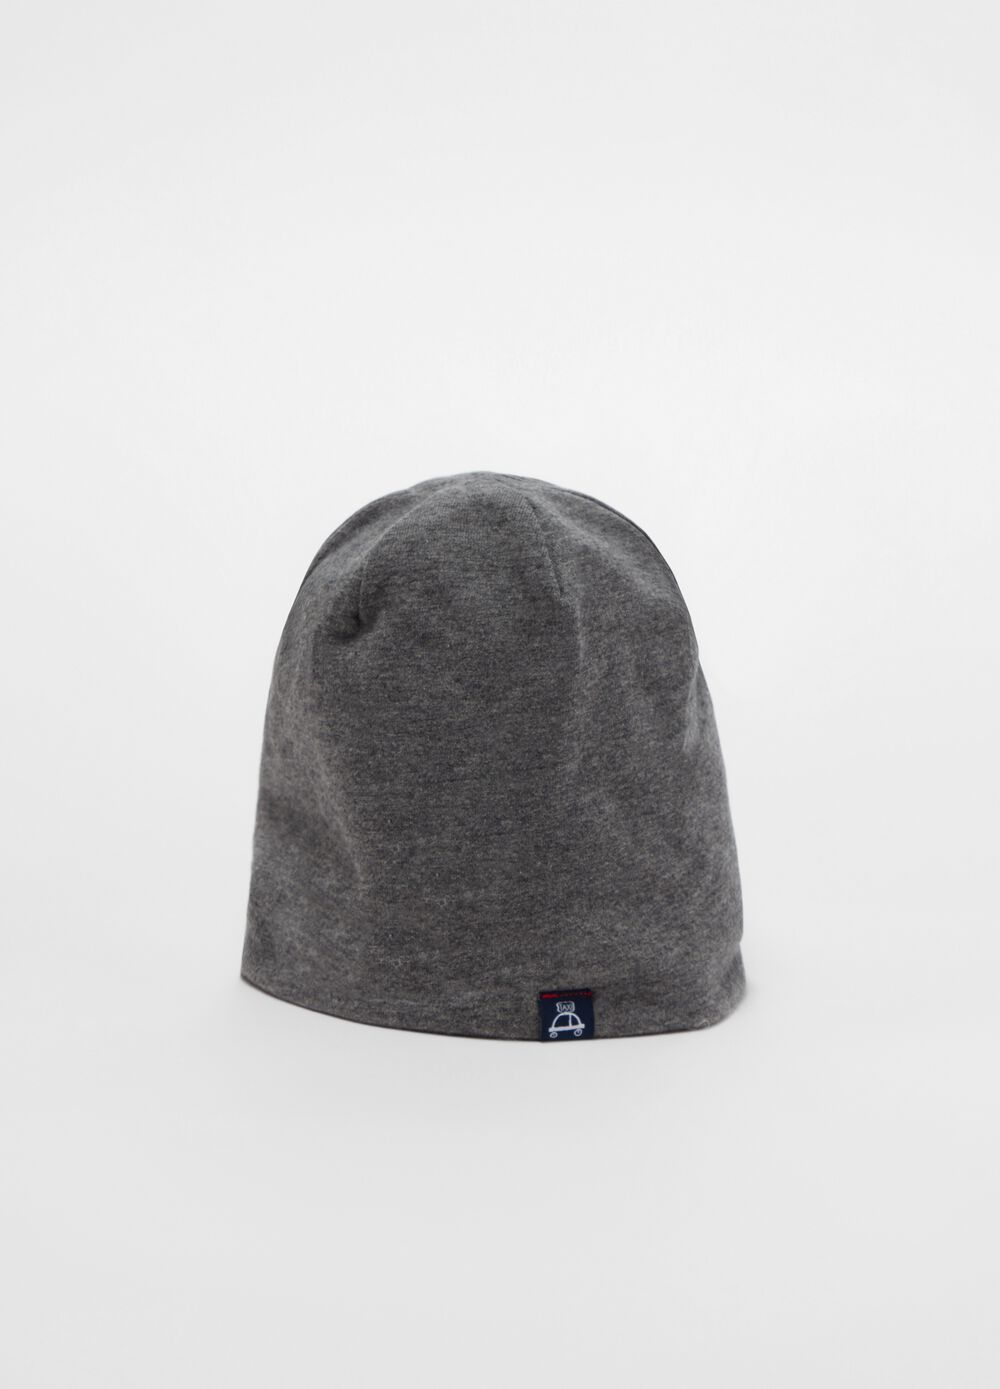 Soft hat in organic cotton